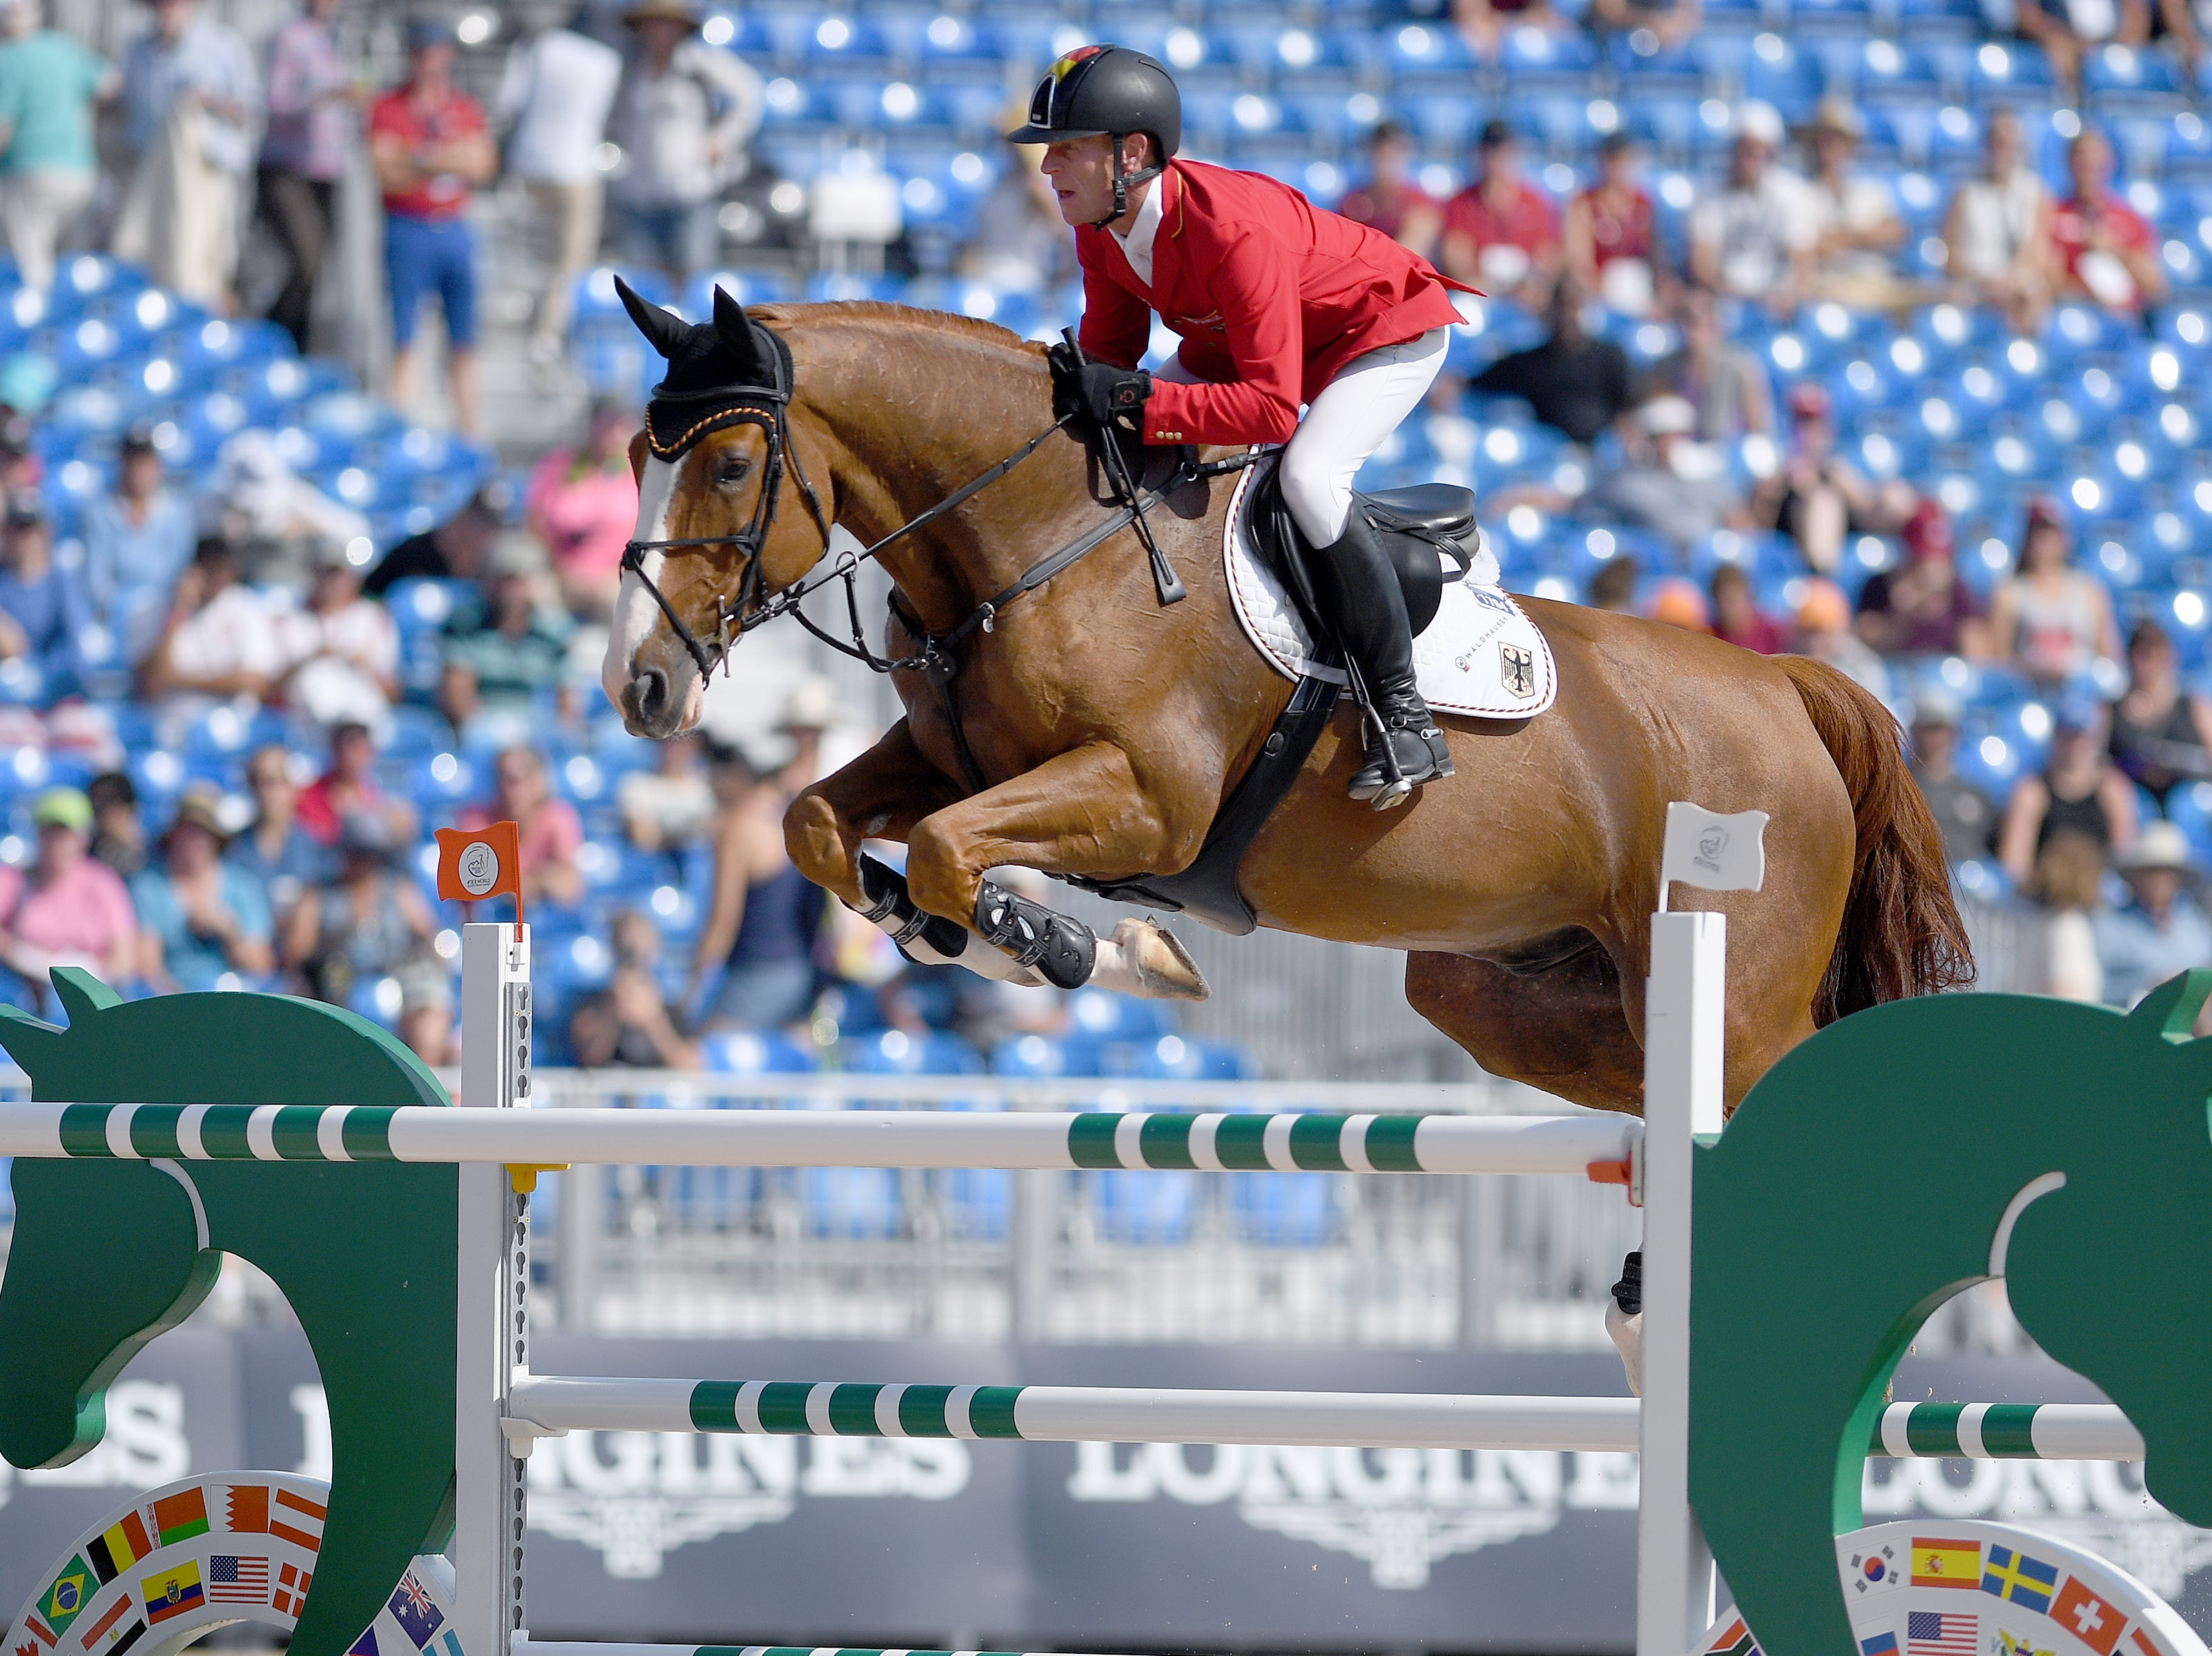 Germany's Marcus Ehning, on Pret A Tout, competes in the team jumping competition of the FEI World Equestrian Games at the Tryon International Equestrian Center on Sept. 20, 2018.